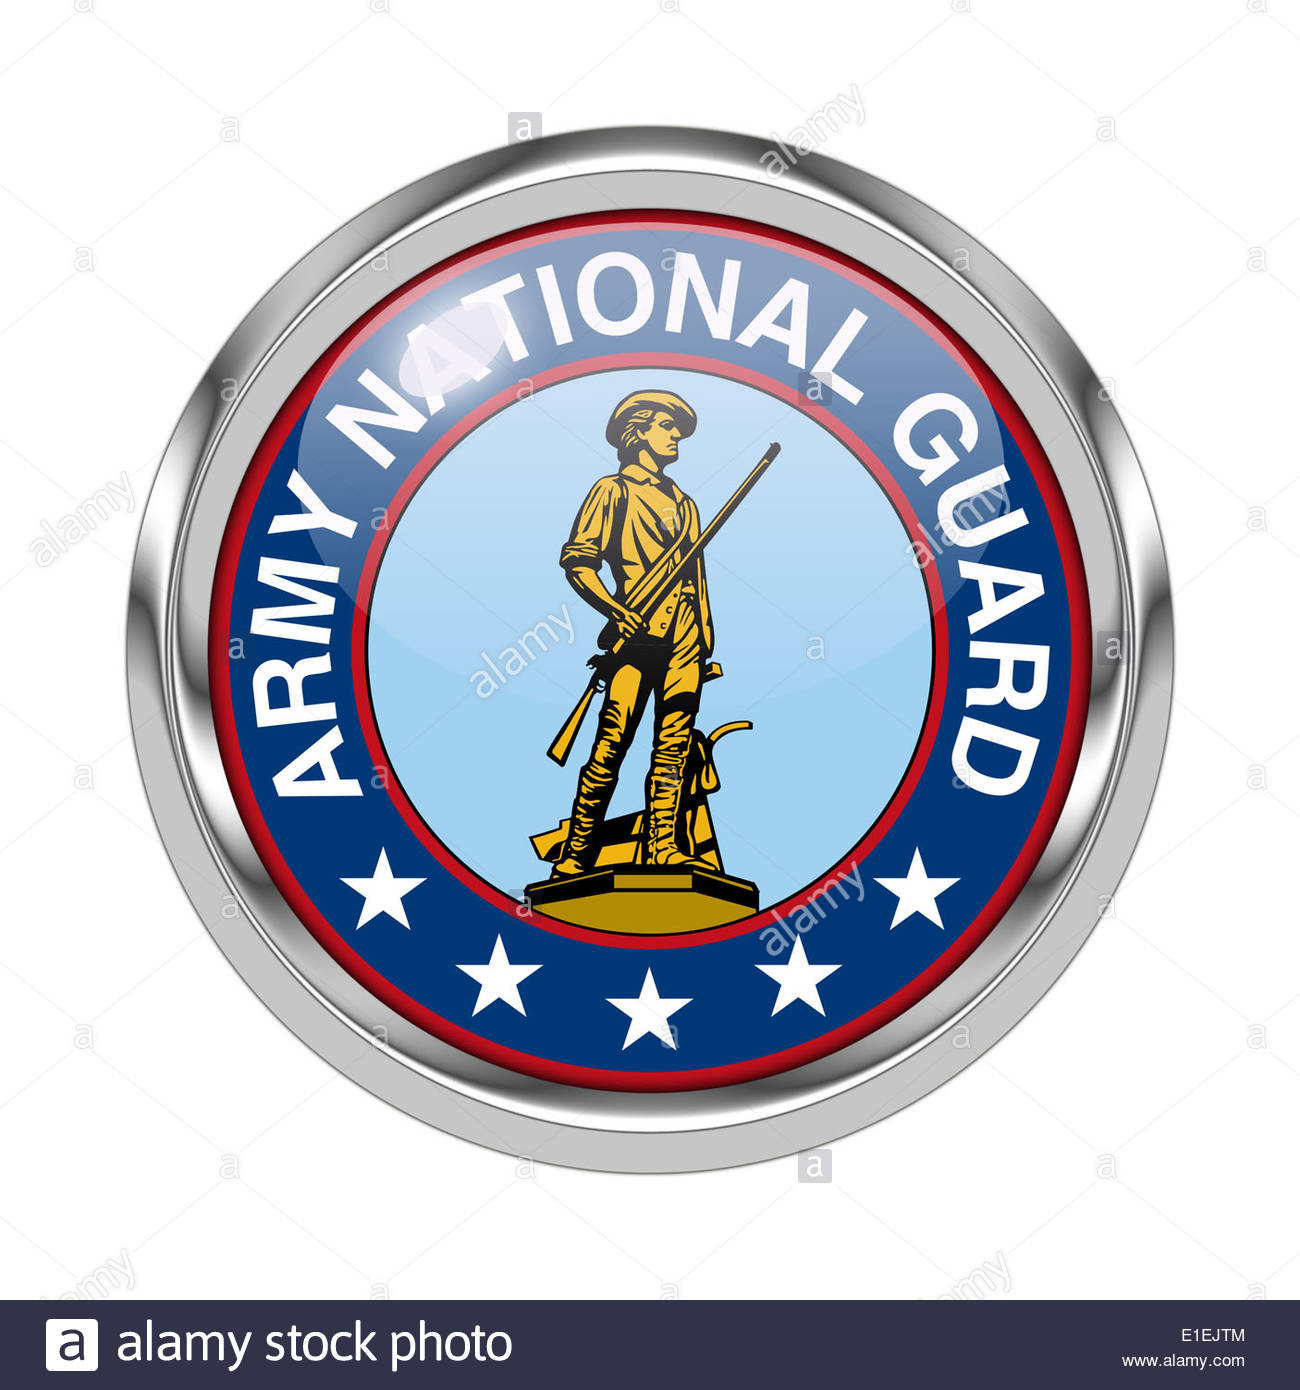 Army National Guard icon logo isolated app button - Stock Image